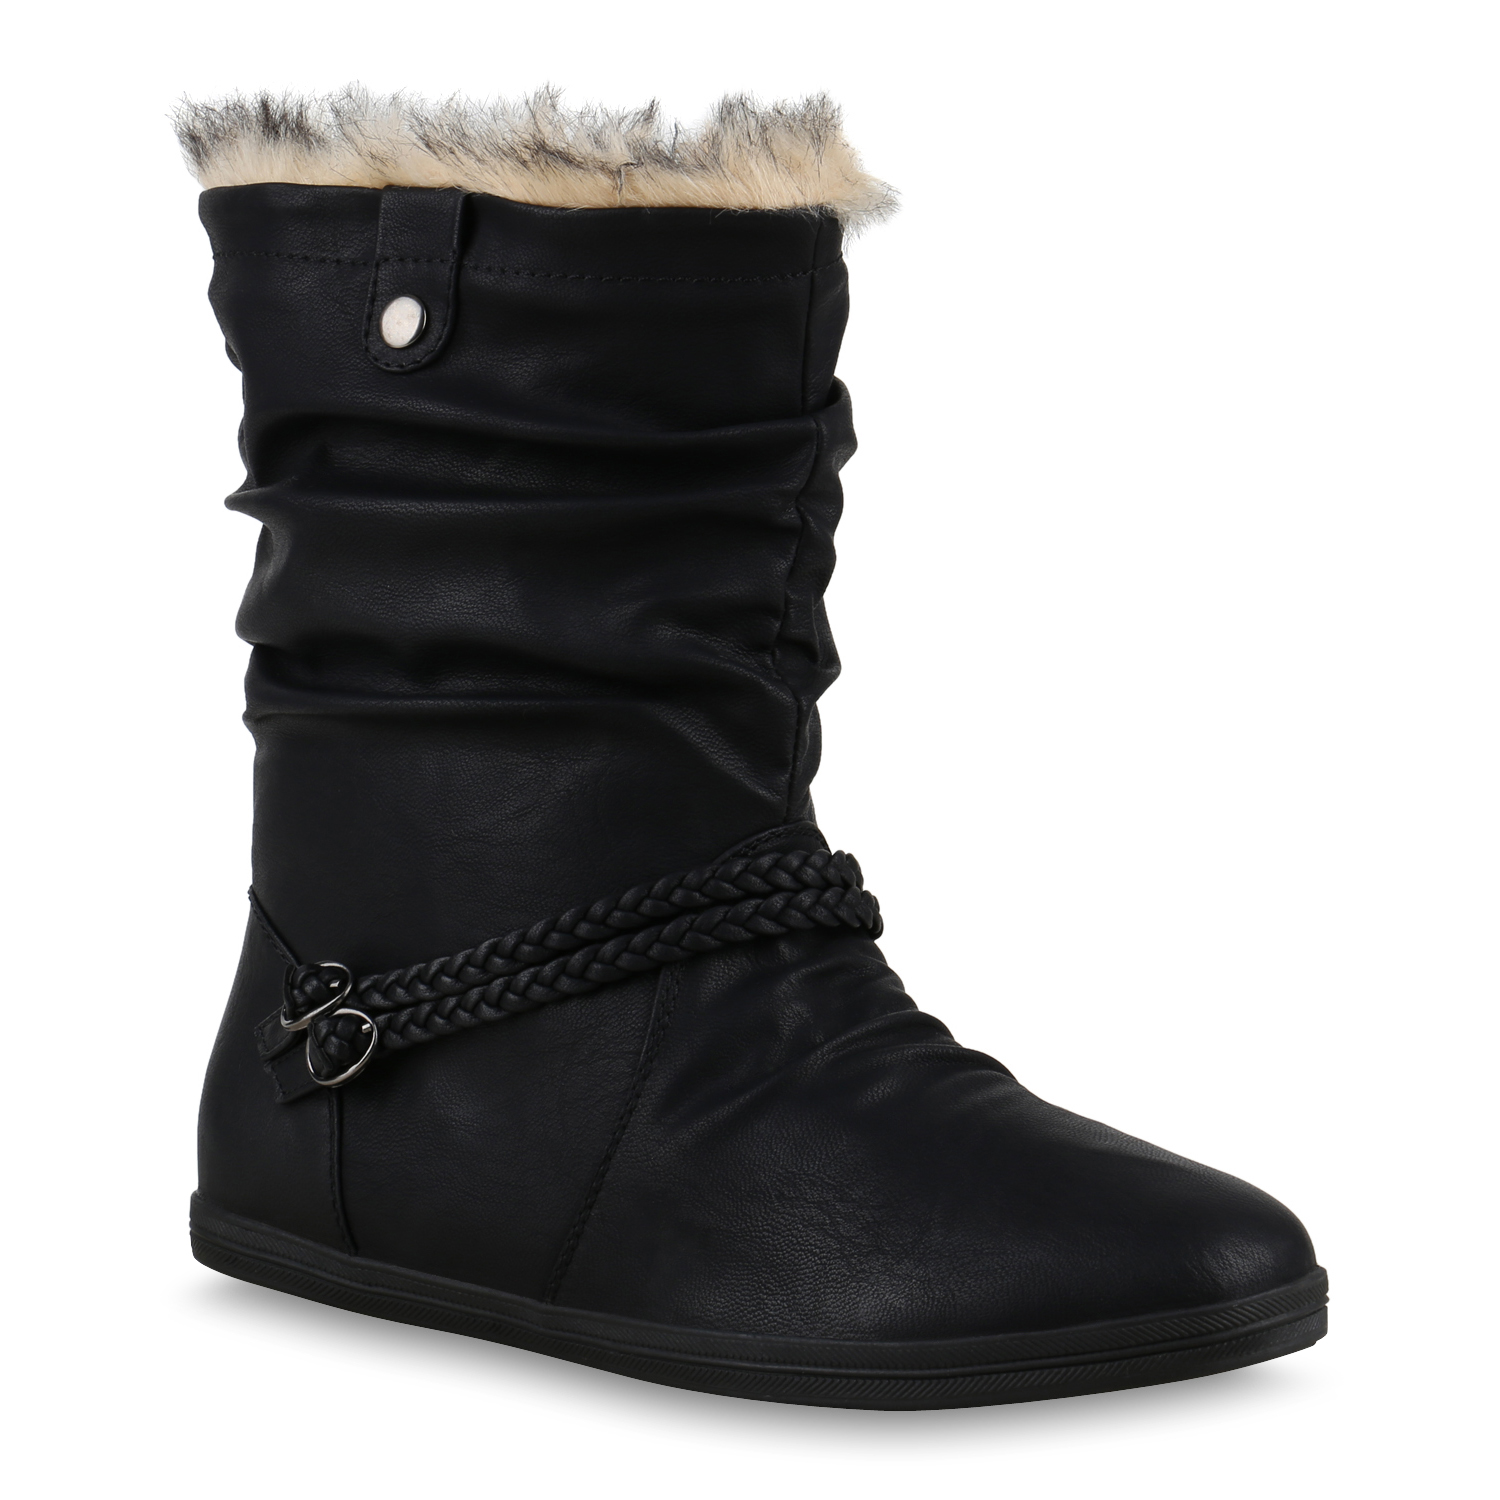 gef tterte damen winter stiefeletten boots winterschuhe bergr en 814097 ebay. Black Bedroom Furniture Sets. Home Design Ideas